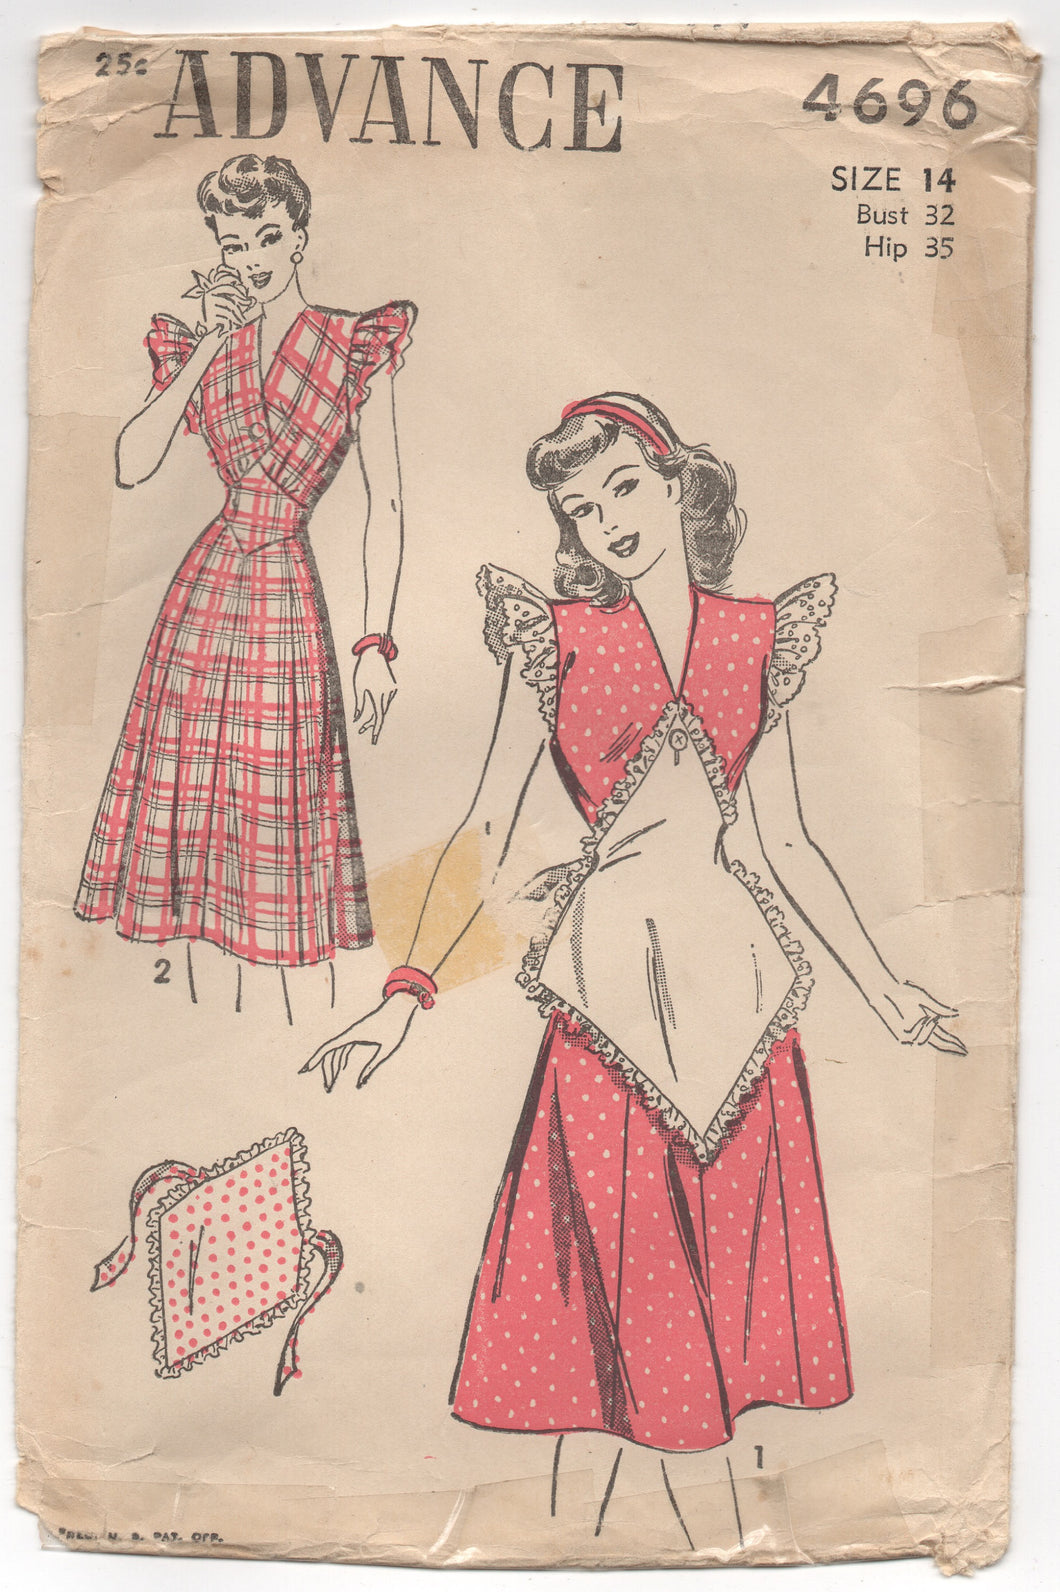 1940's Advance One Piece Dress with Deep V Neck and Button on Apron Pattern - Bust 33